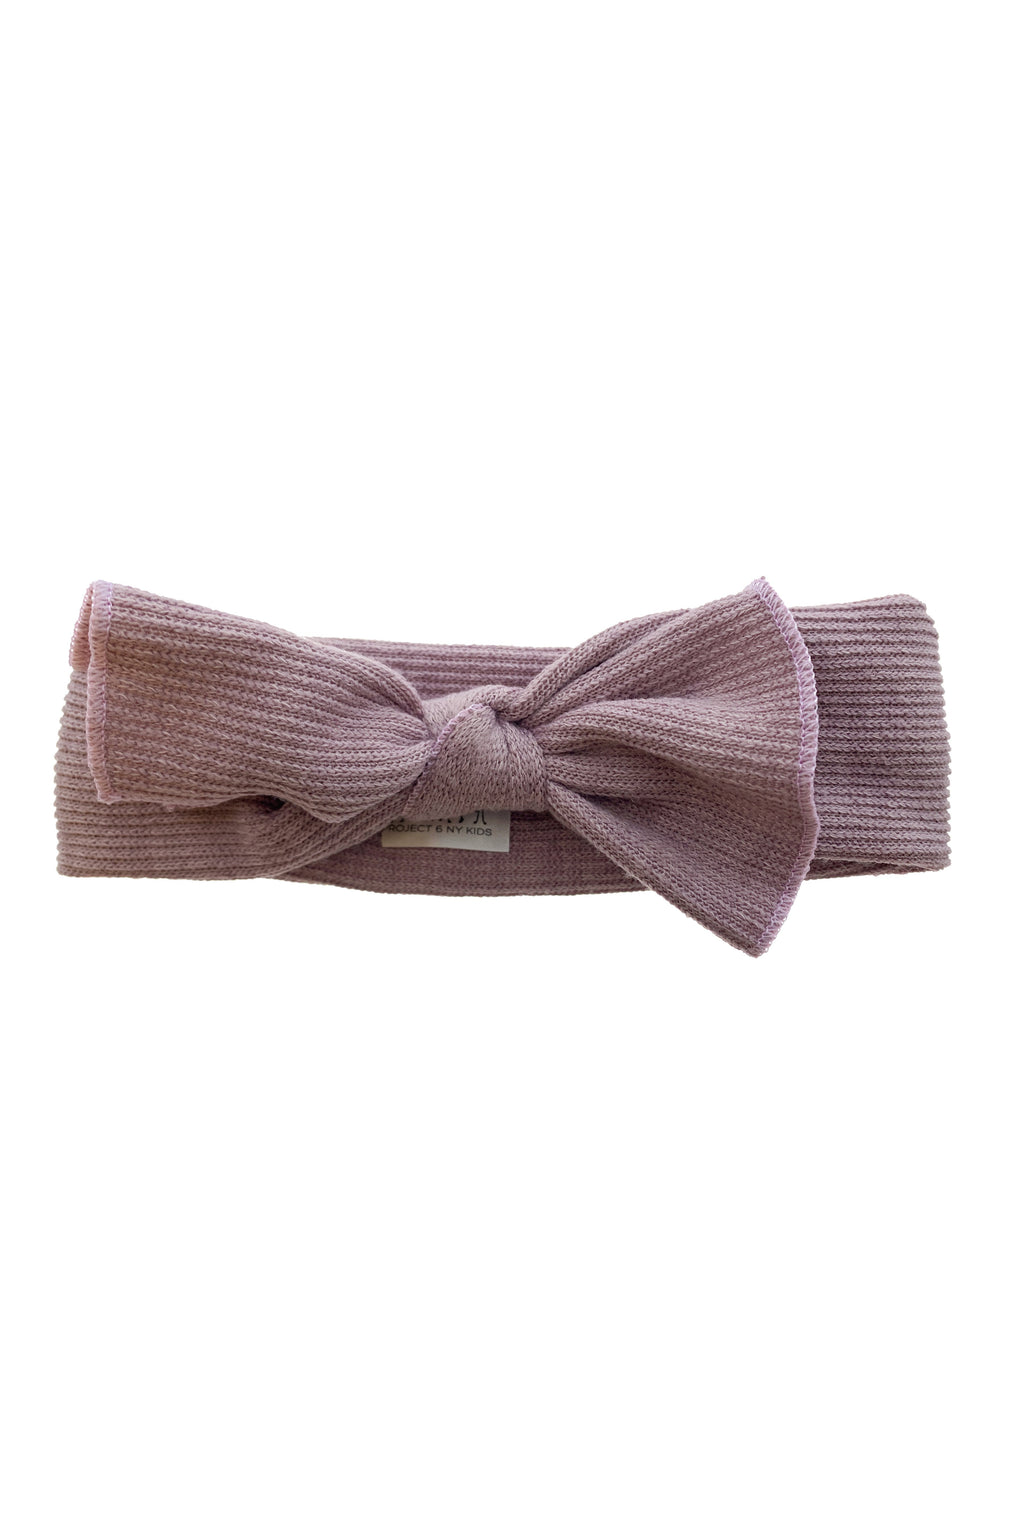 Knitted Bow Wrap - Purple Mauve - PROJECT 6, modest fashion